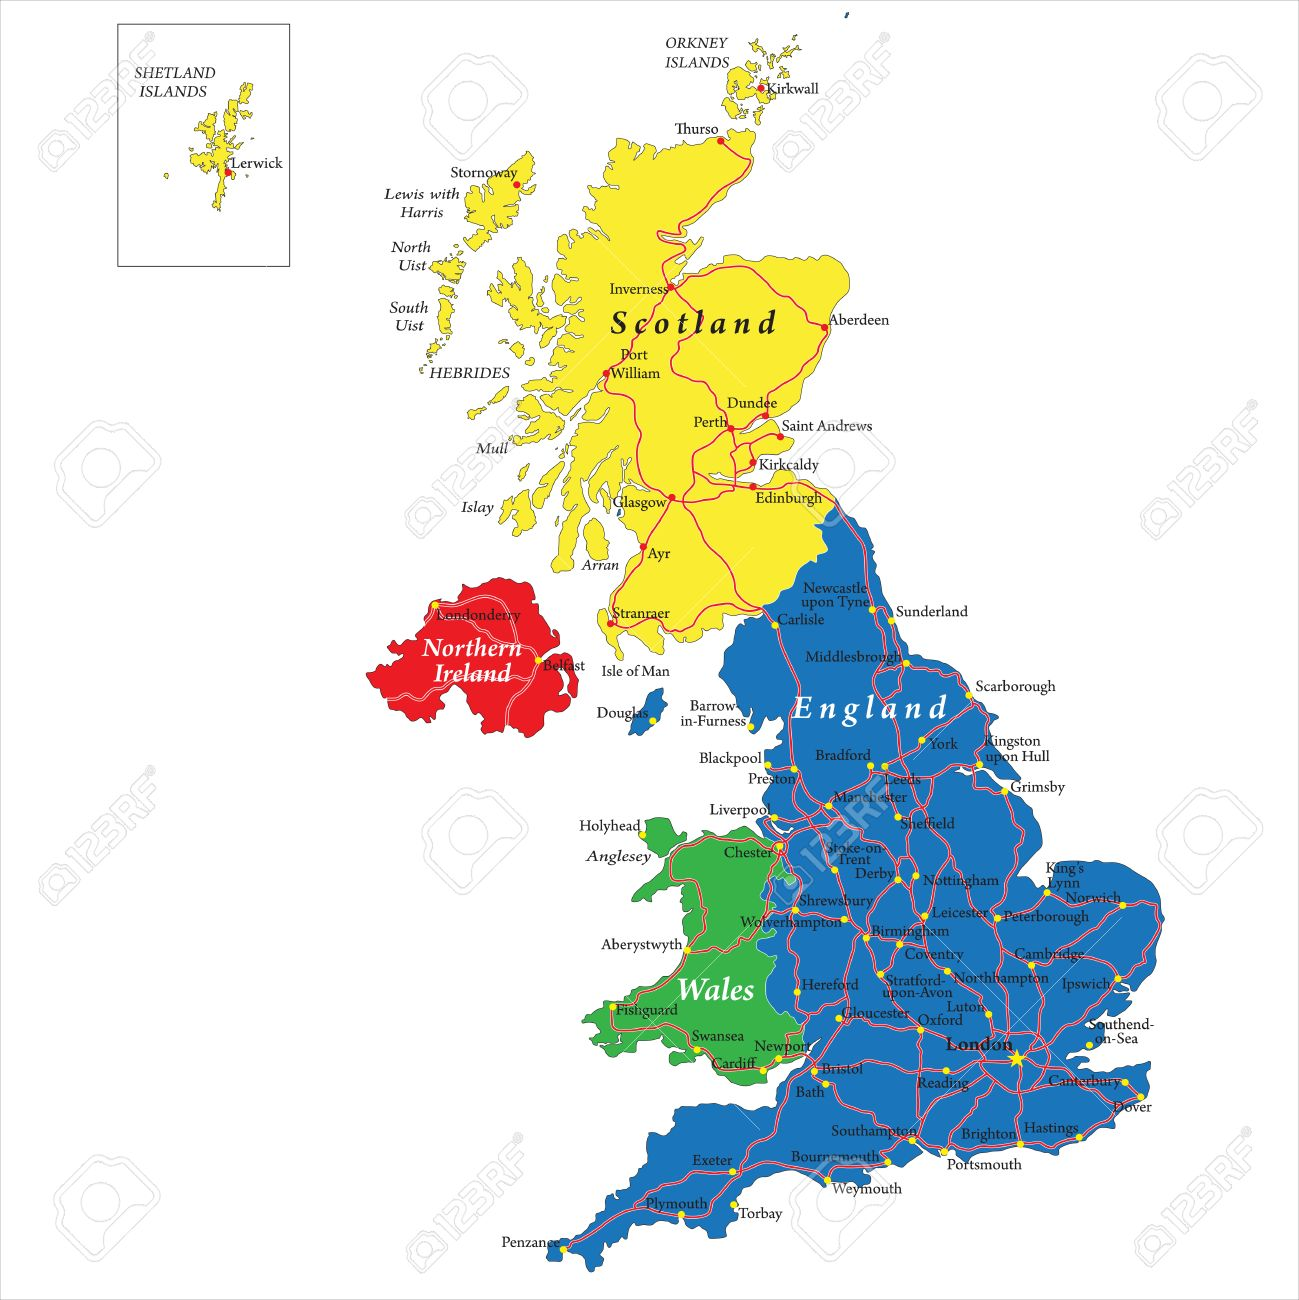 England Scotland Wales Map Royalty Free Cliparts Vectors And Stock